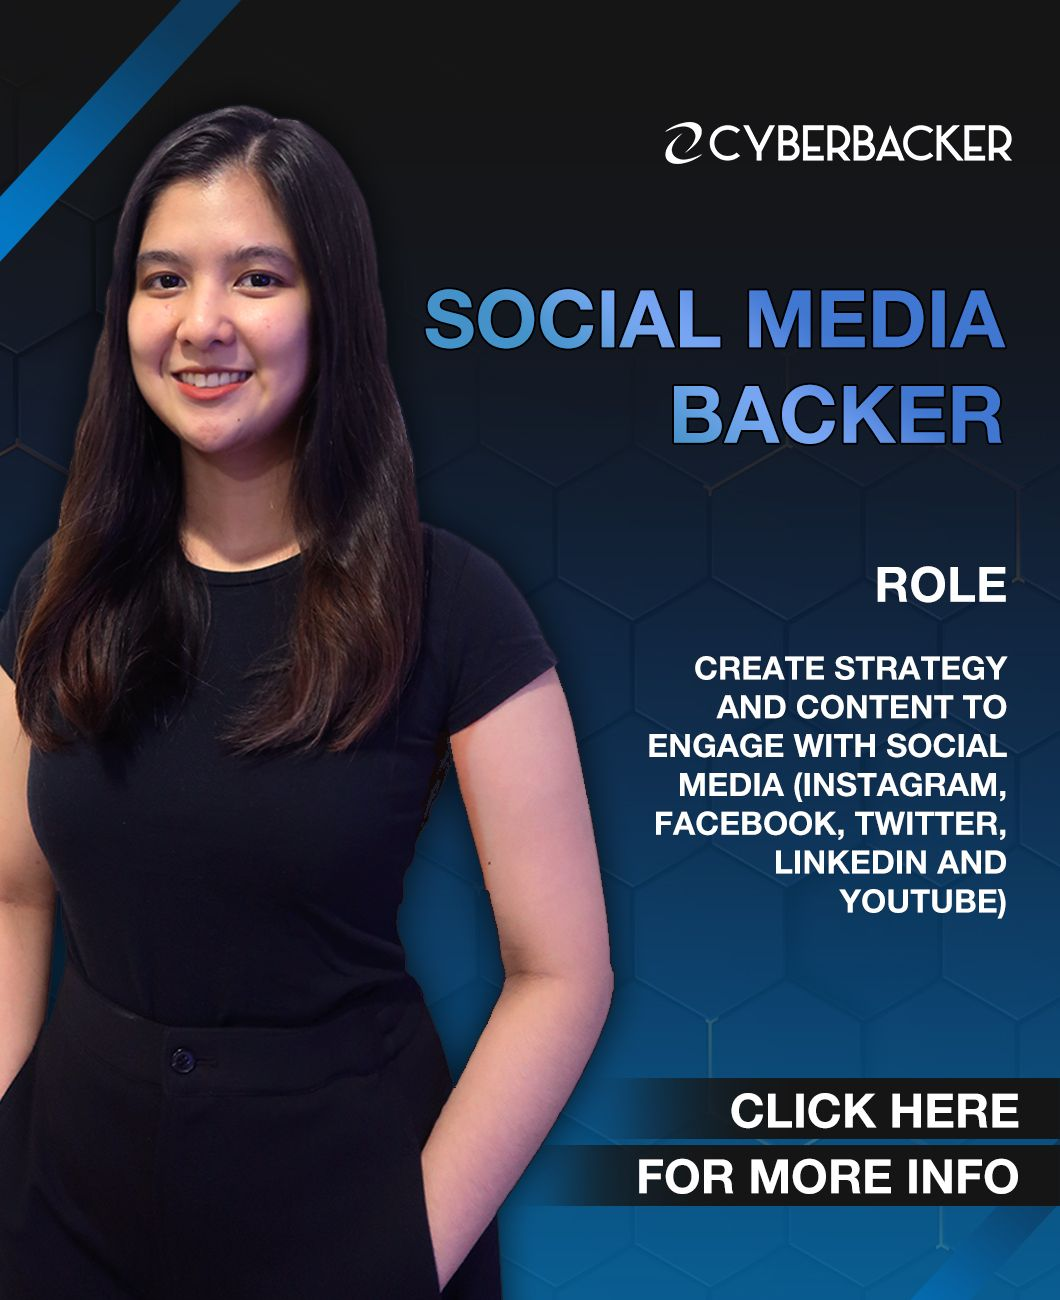 Social Media Backer 3 - Virtual Assistant Services in United States